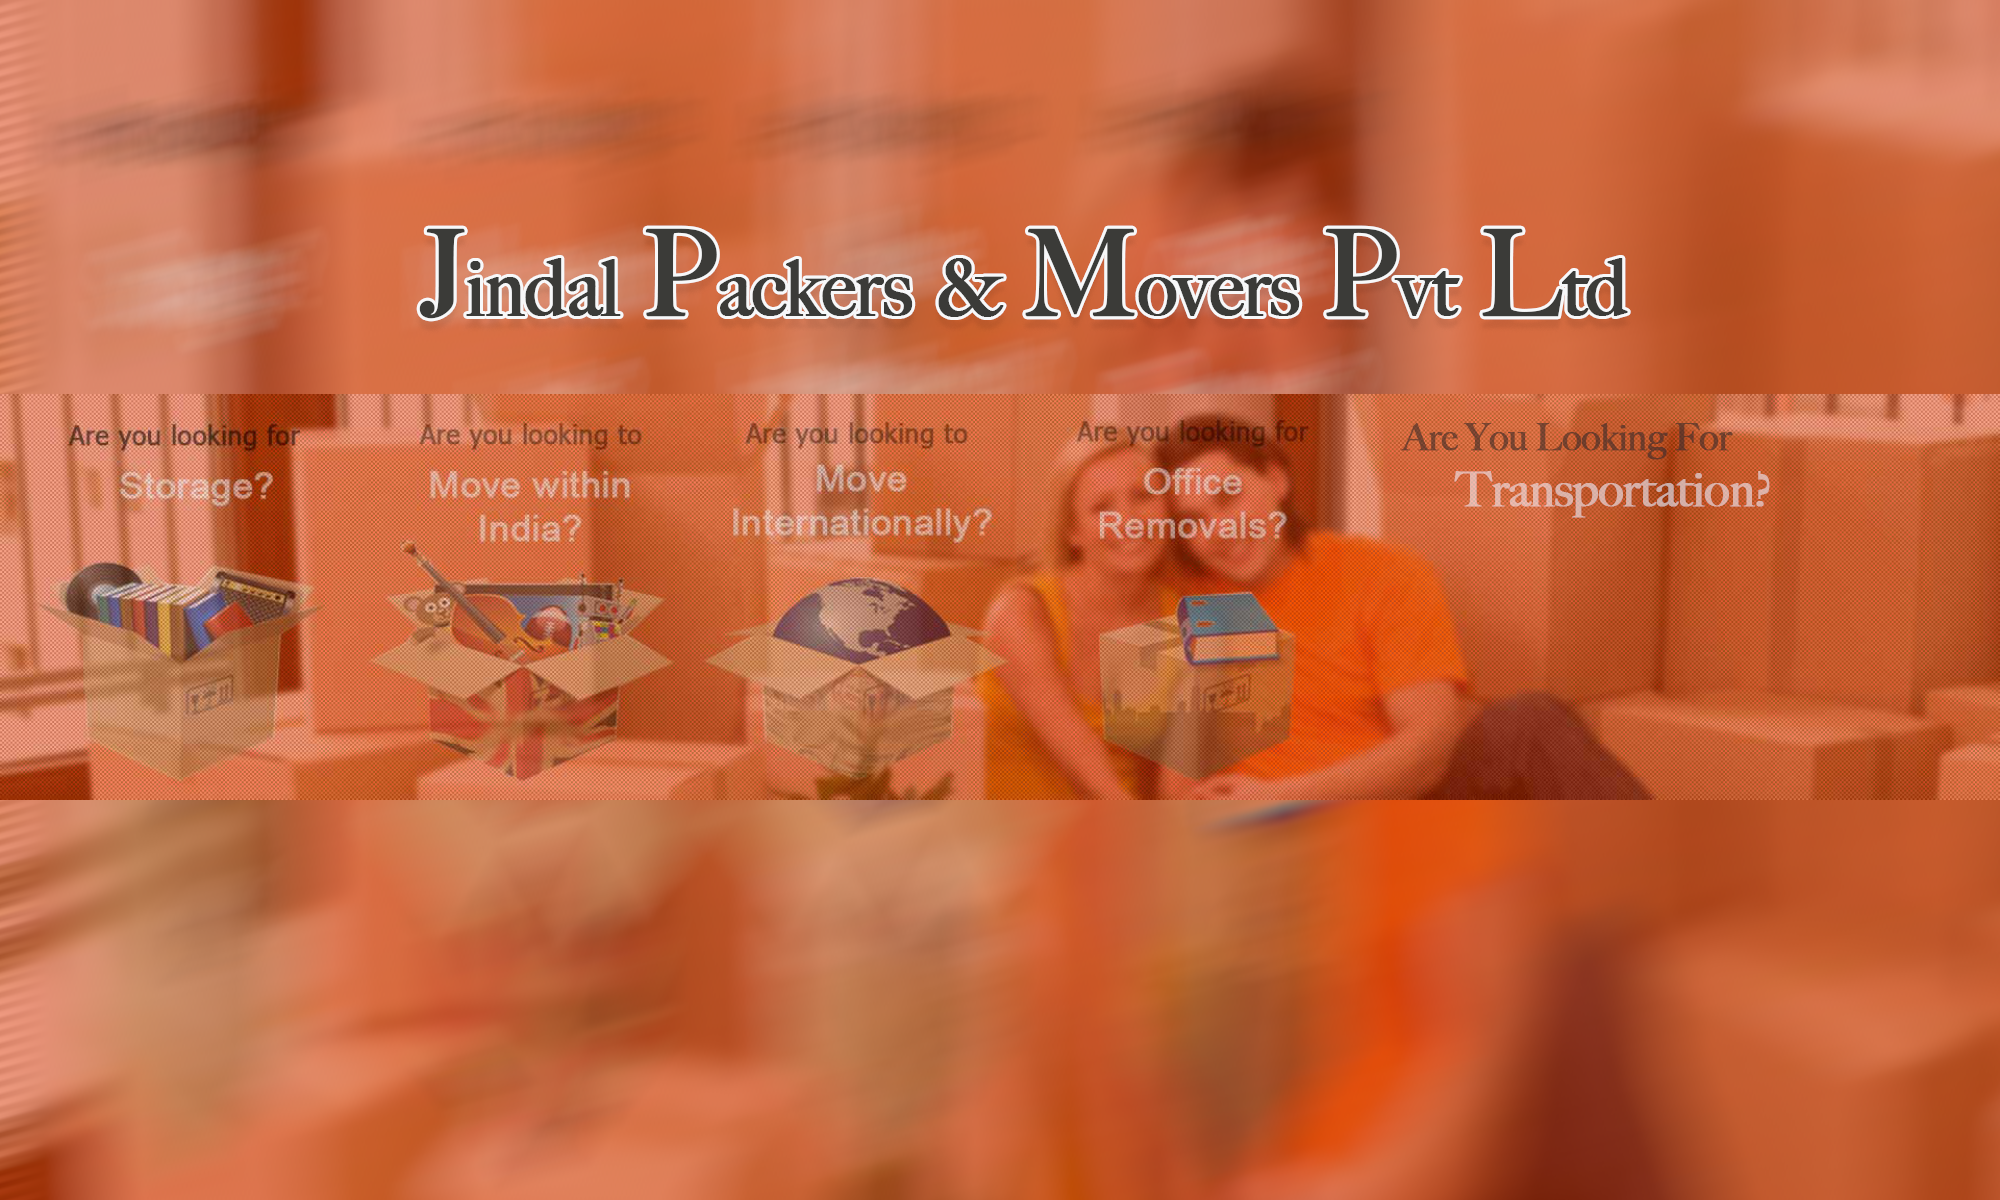 Jindal Packers